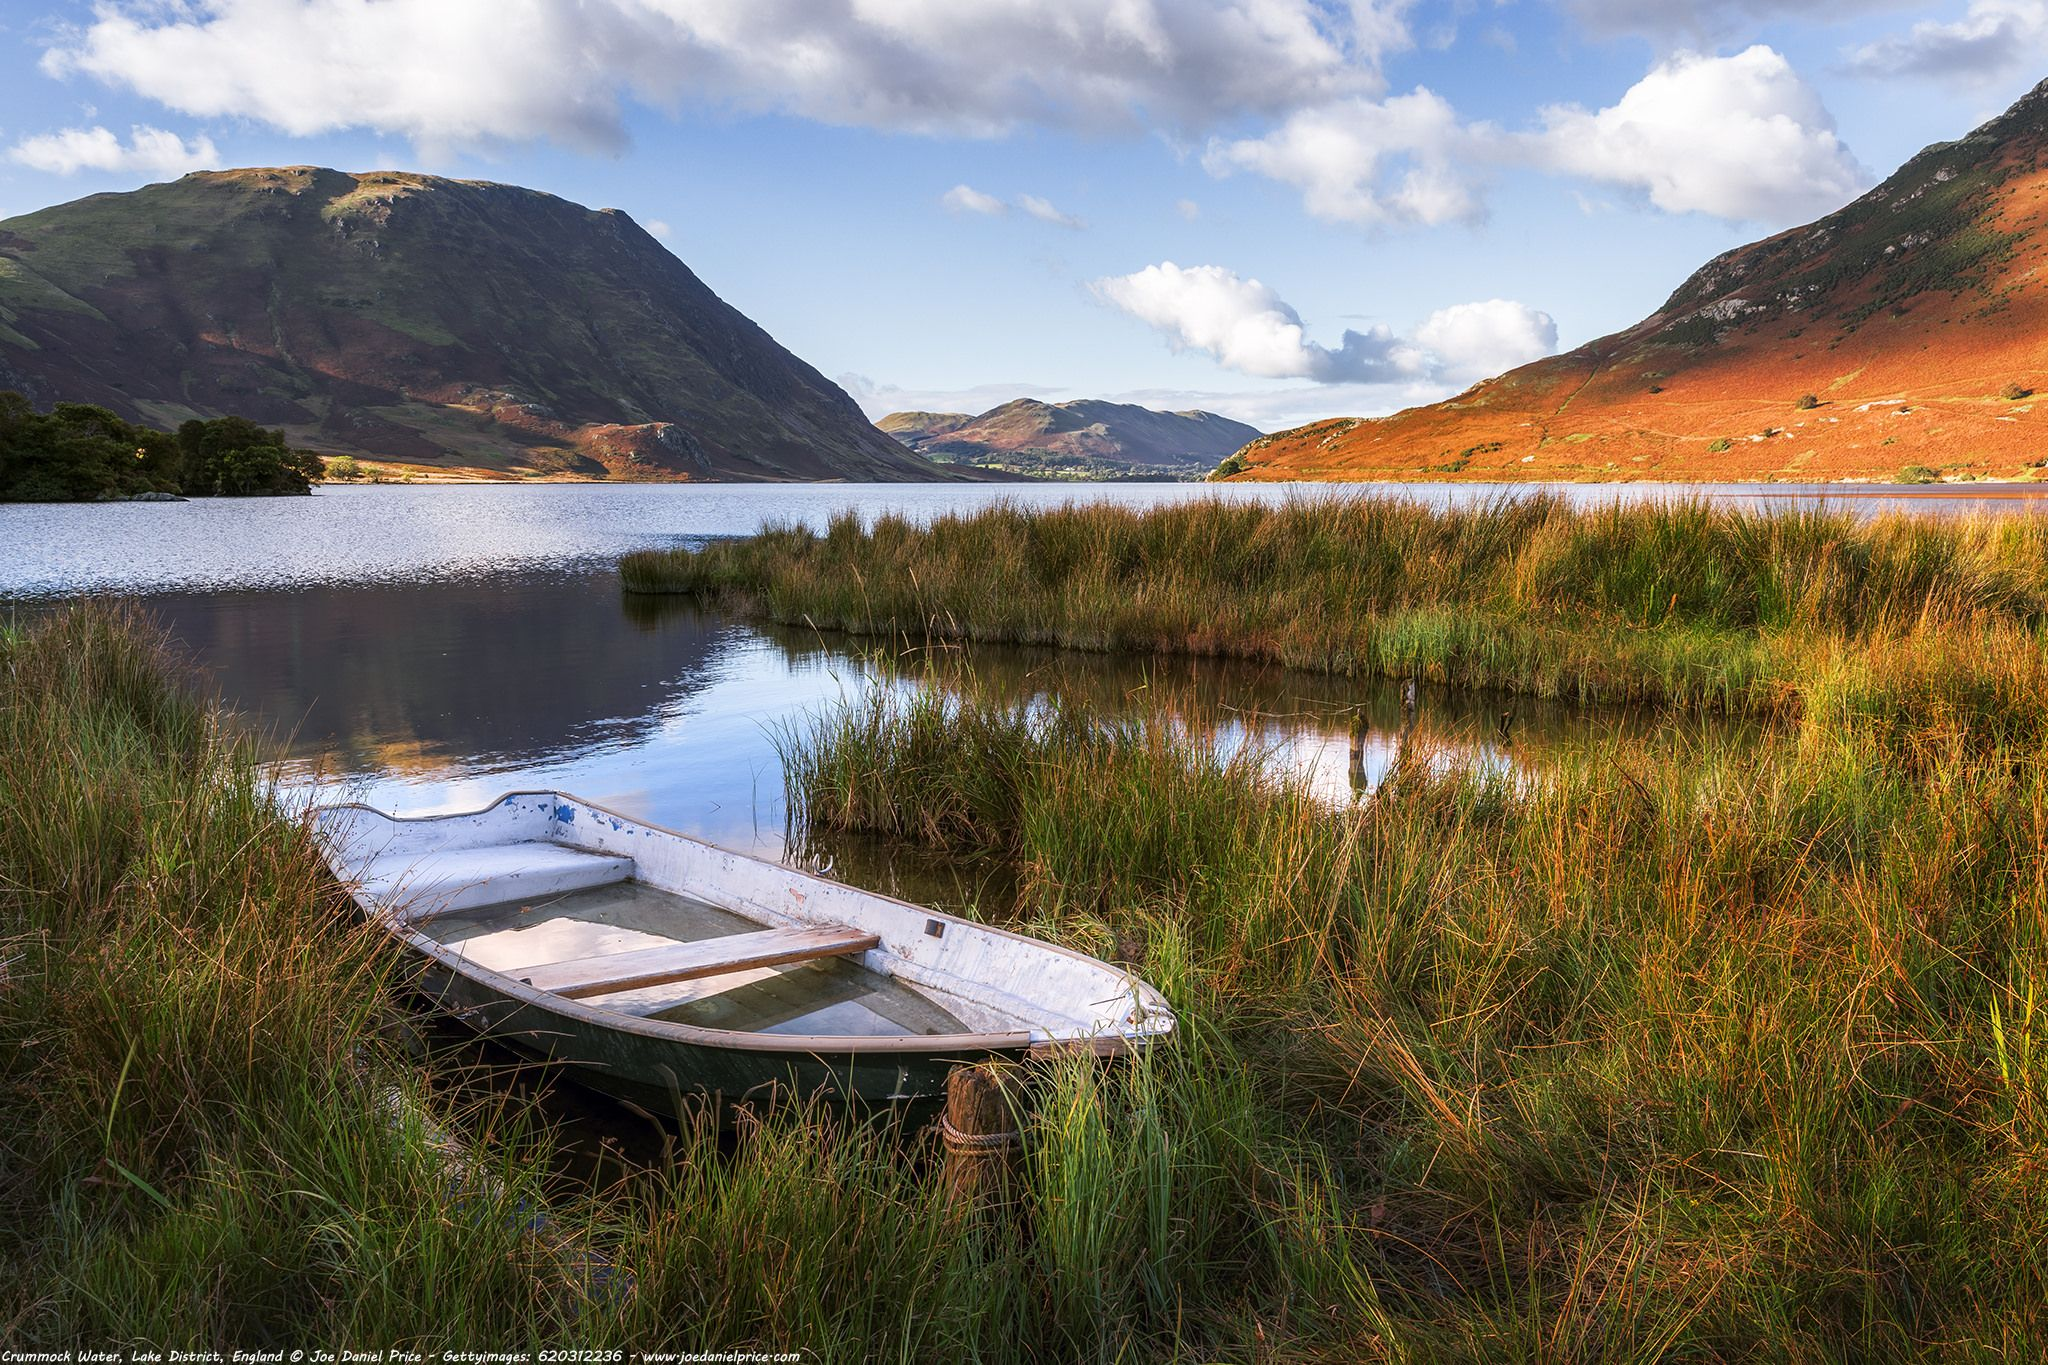 https://flic.kr/p/GVv9E8 | Moored Boat, Crummock Water, Lake District, Cumbria, England